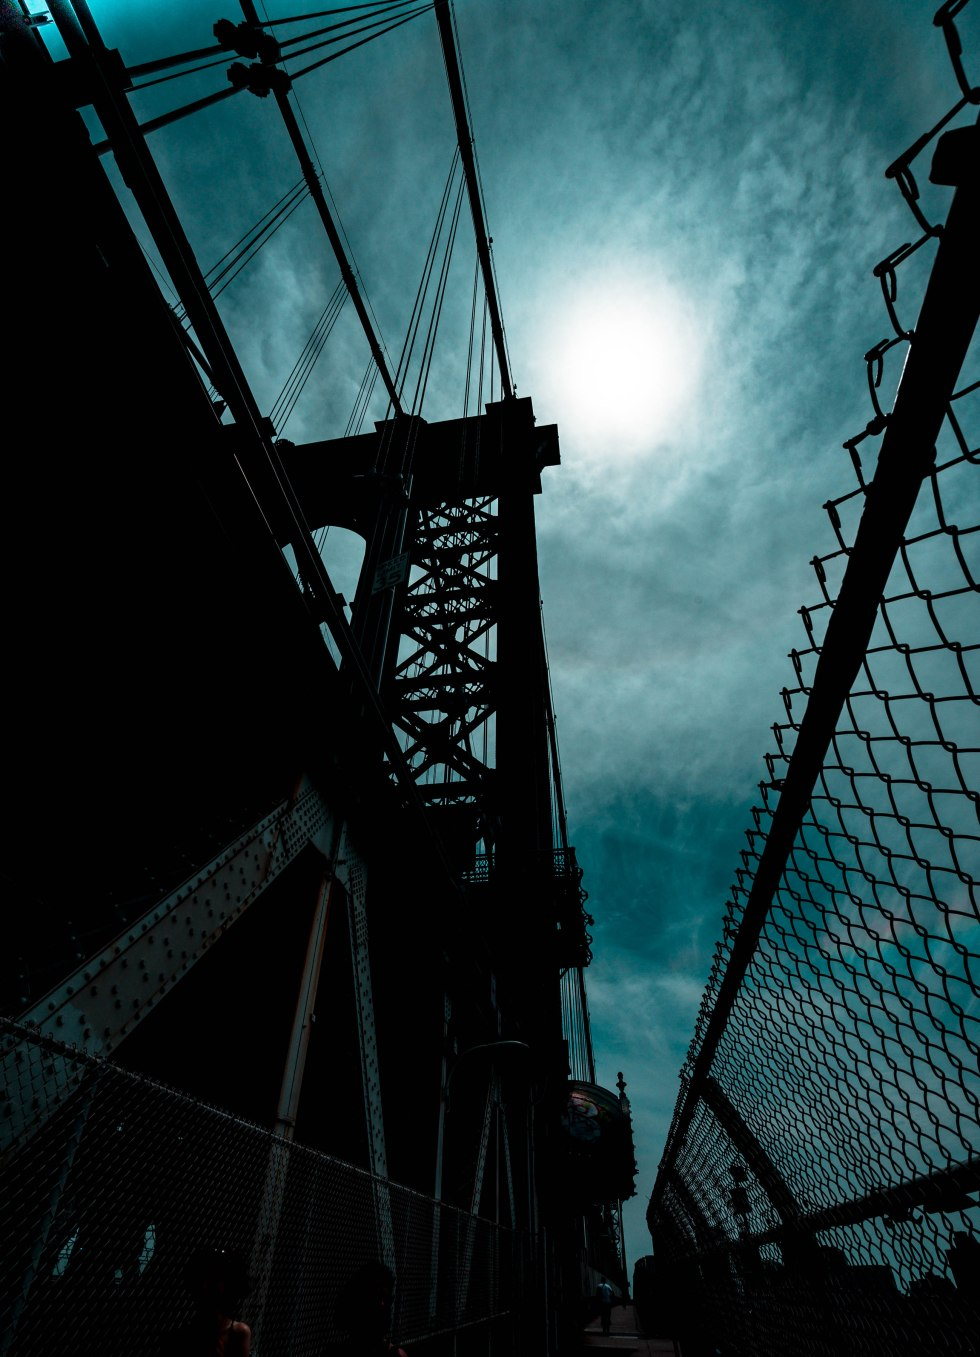 Shadows of Manhattan Bridge